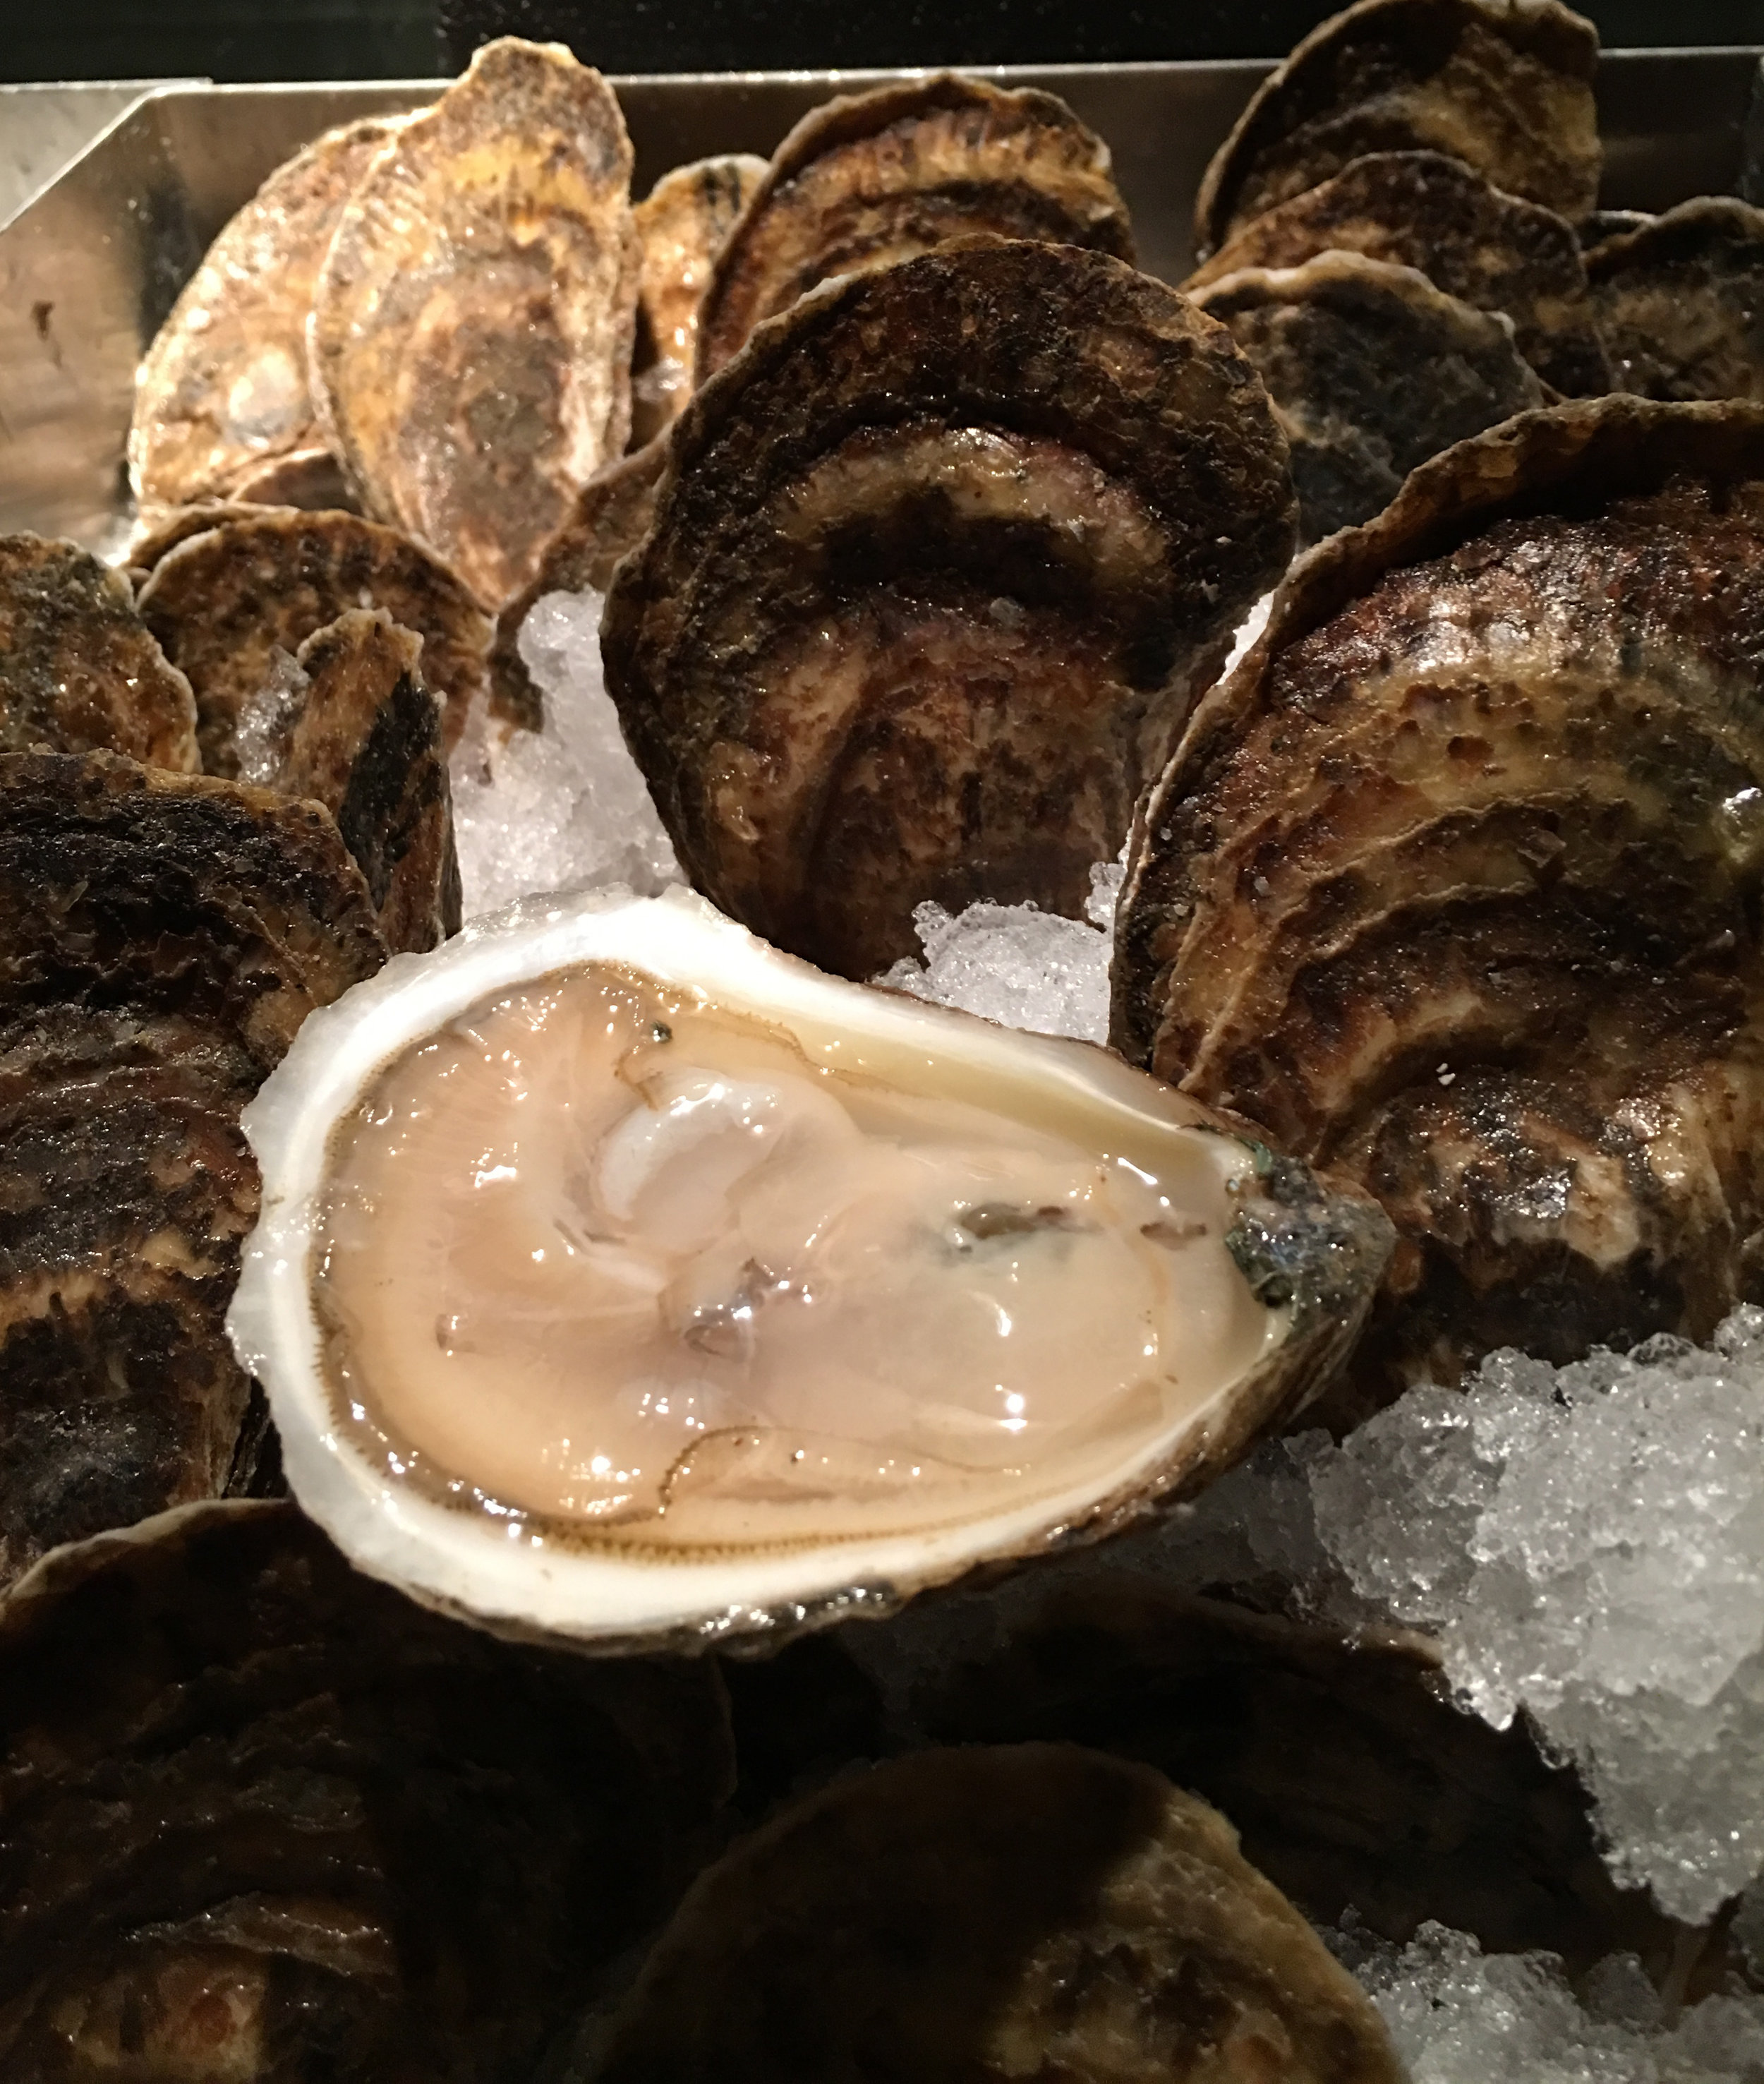 Pemaquid Oysters from Maine - absolutely delicious